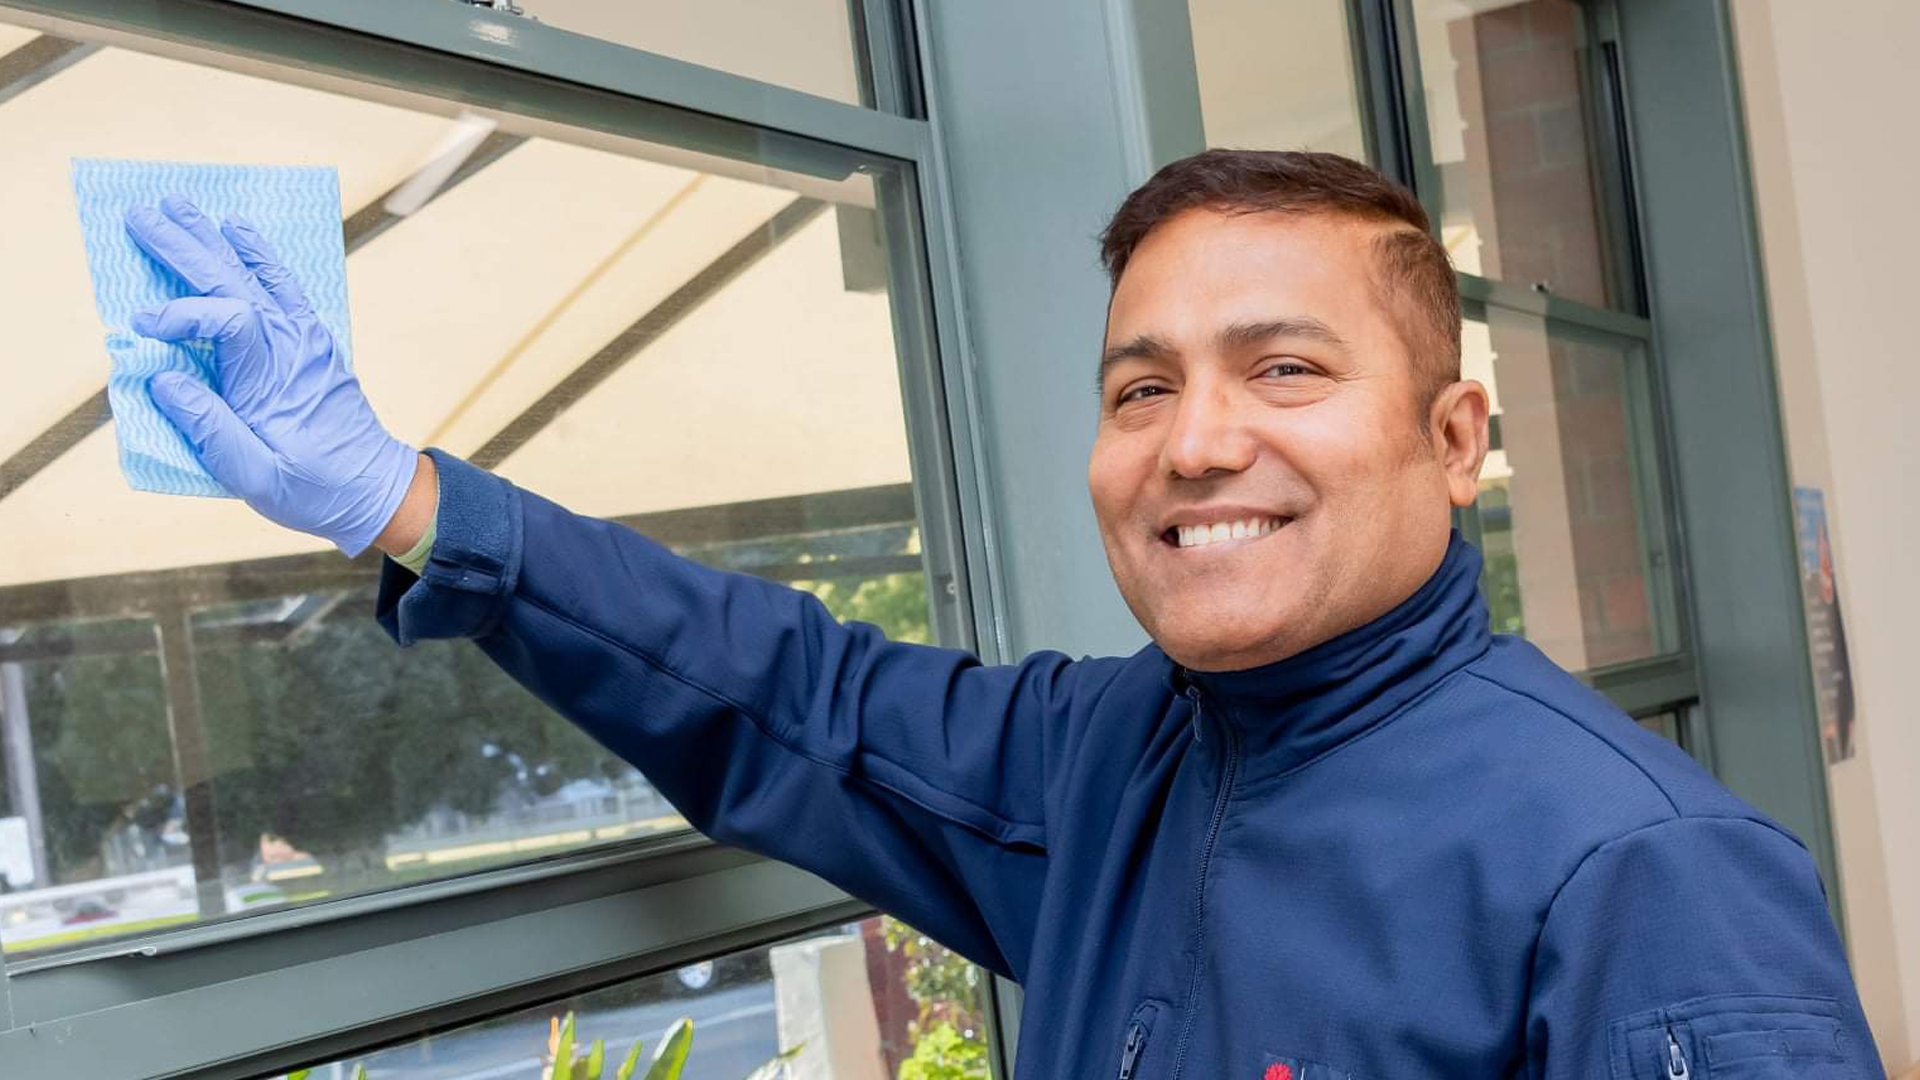 Image features Farhad in his new work uniform, smiling at the camera while cleaning a window.